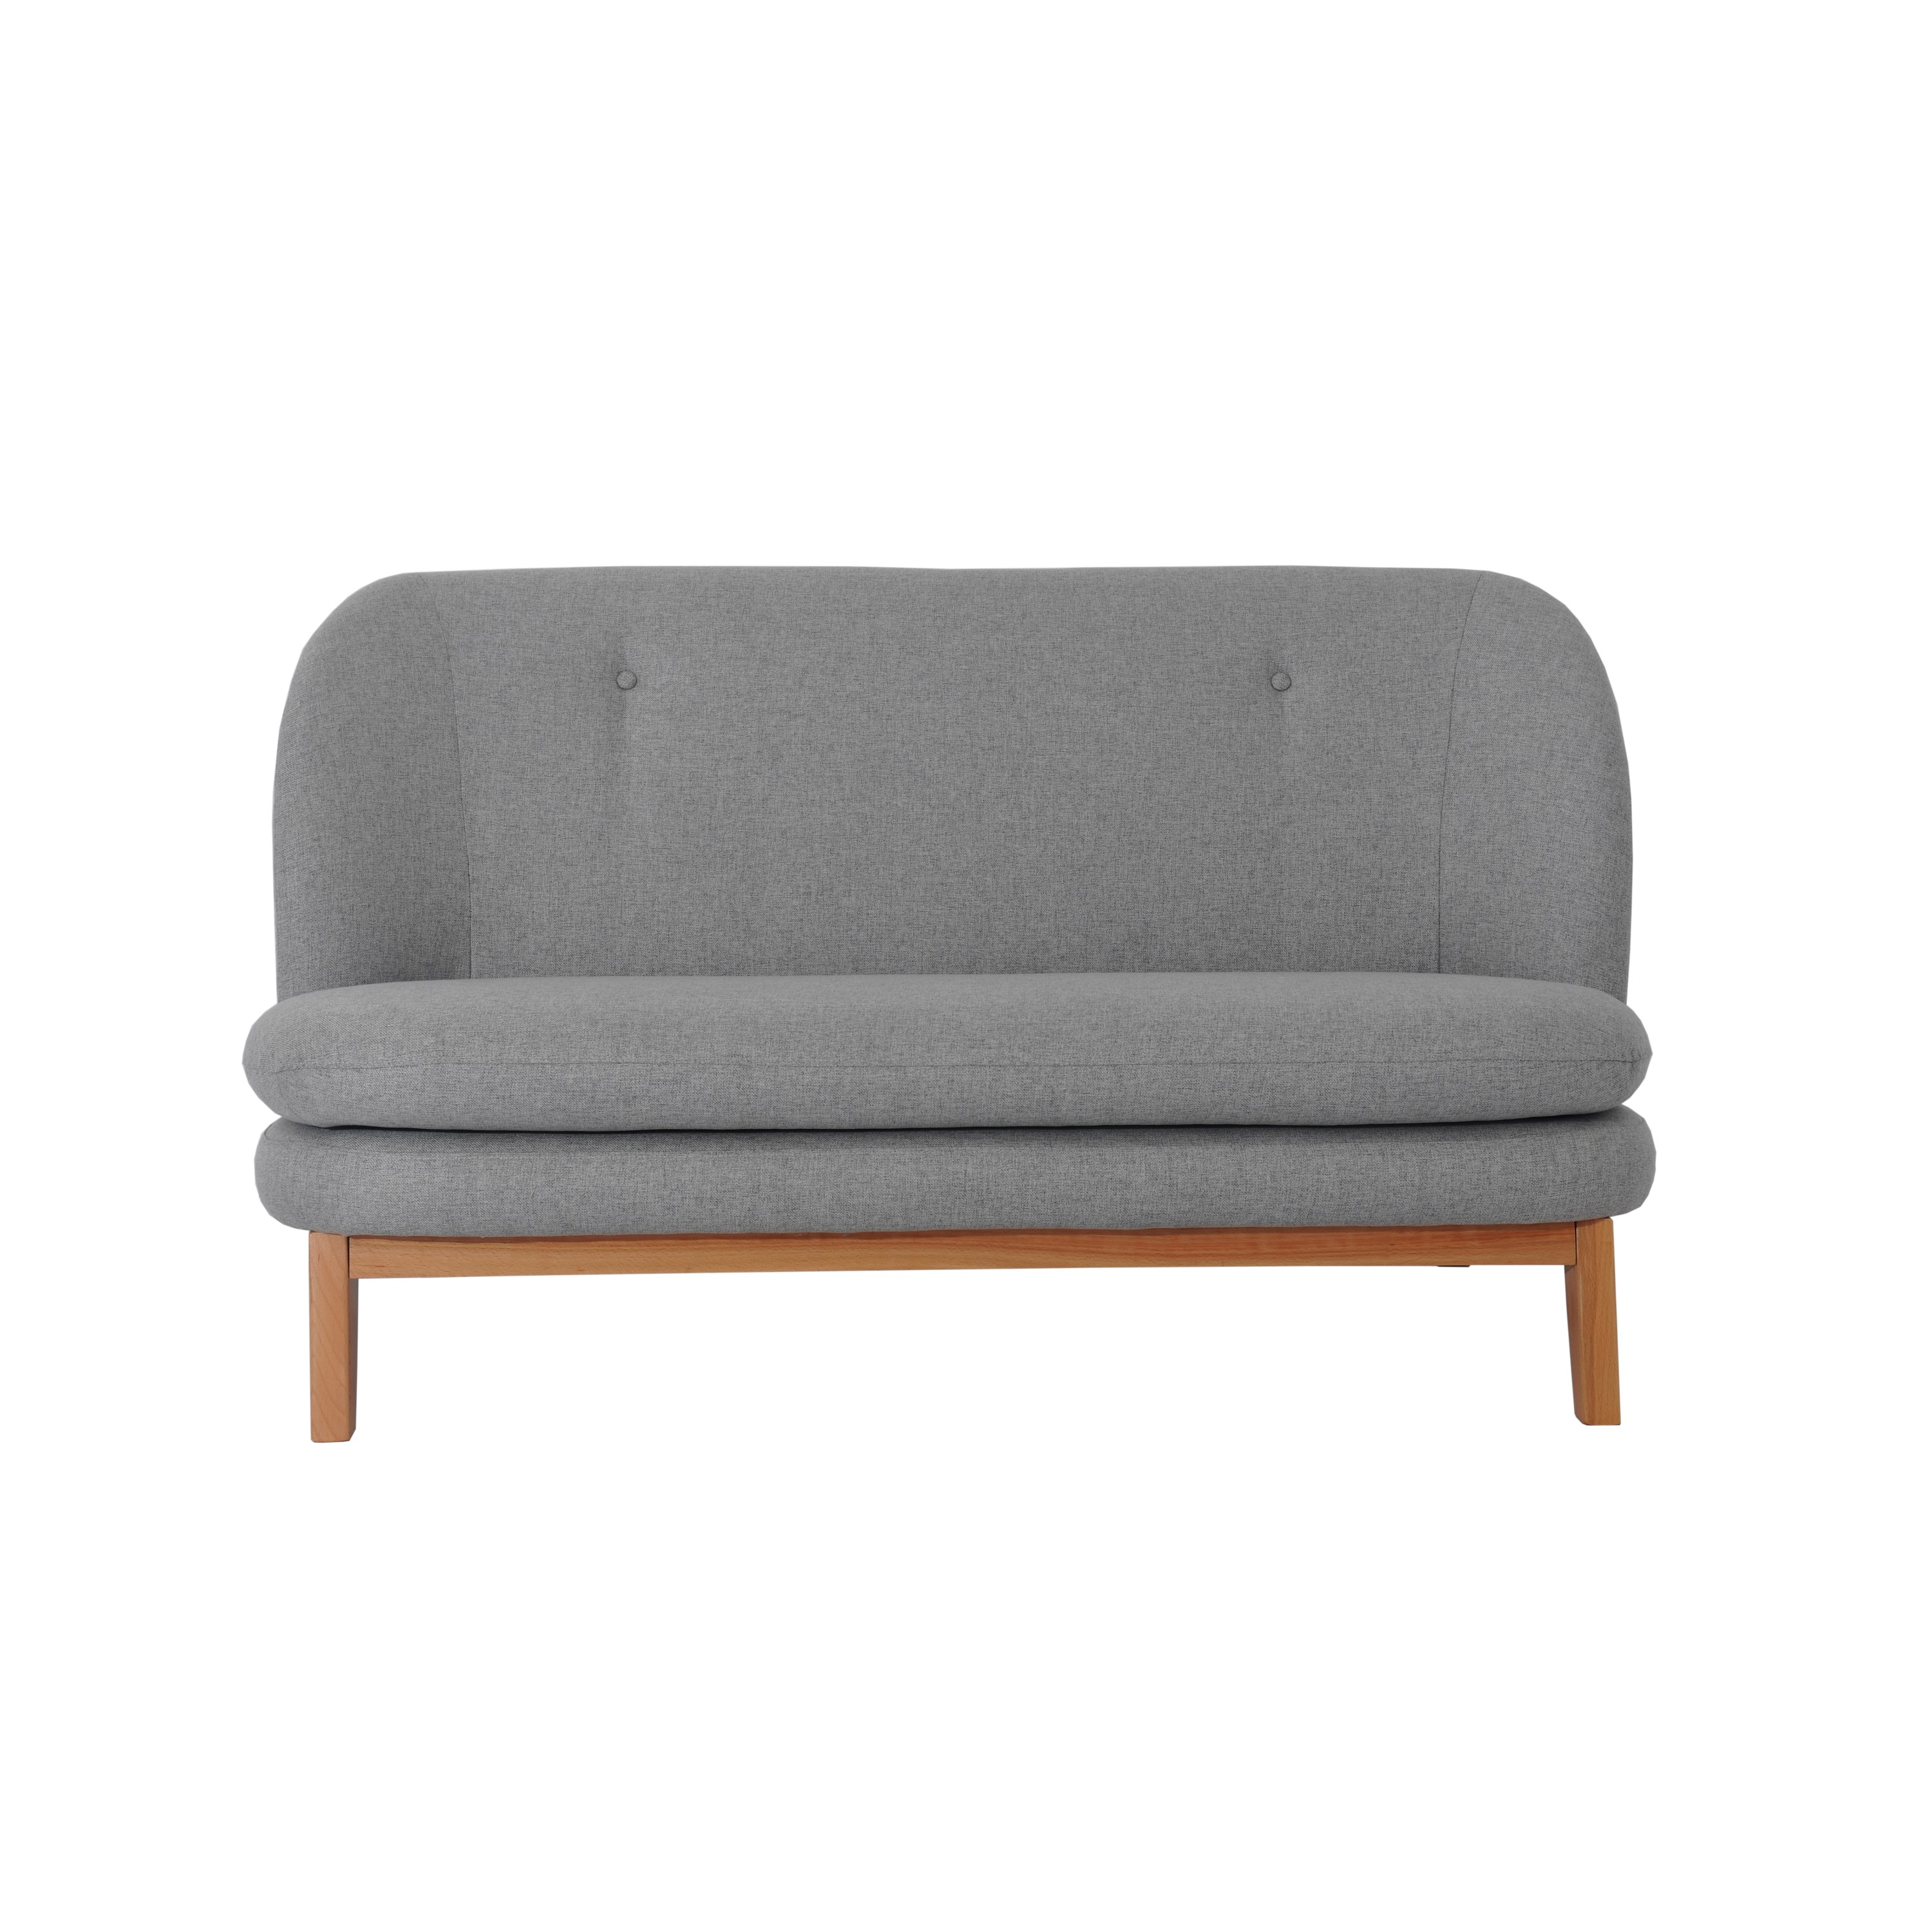 Nisco Living Room Furniture Mid Century Modern Tufted Button Armless Settee In Grey Fabric Buy Simple Style 2 Seater Sofa With Wooden Frame Sofa